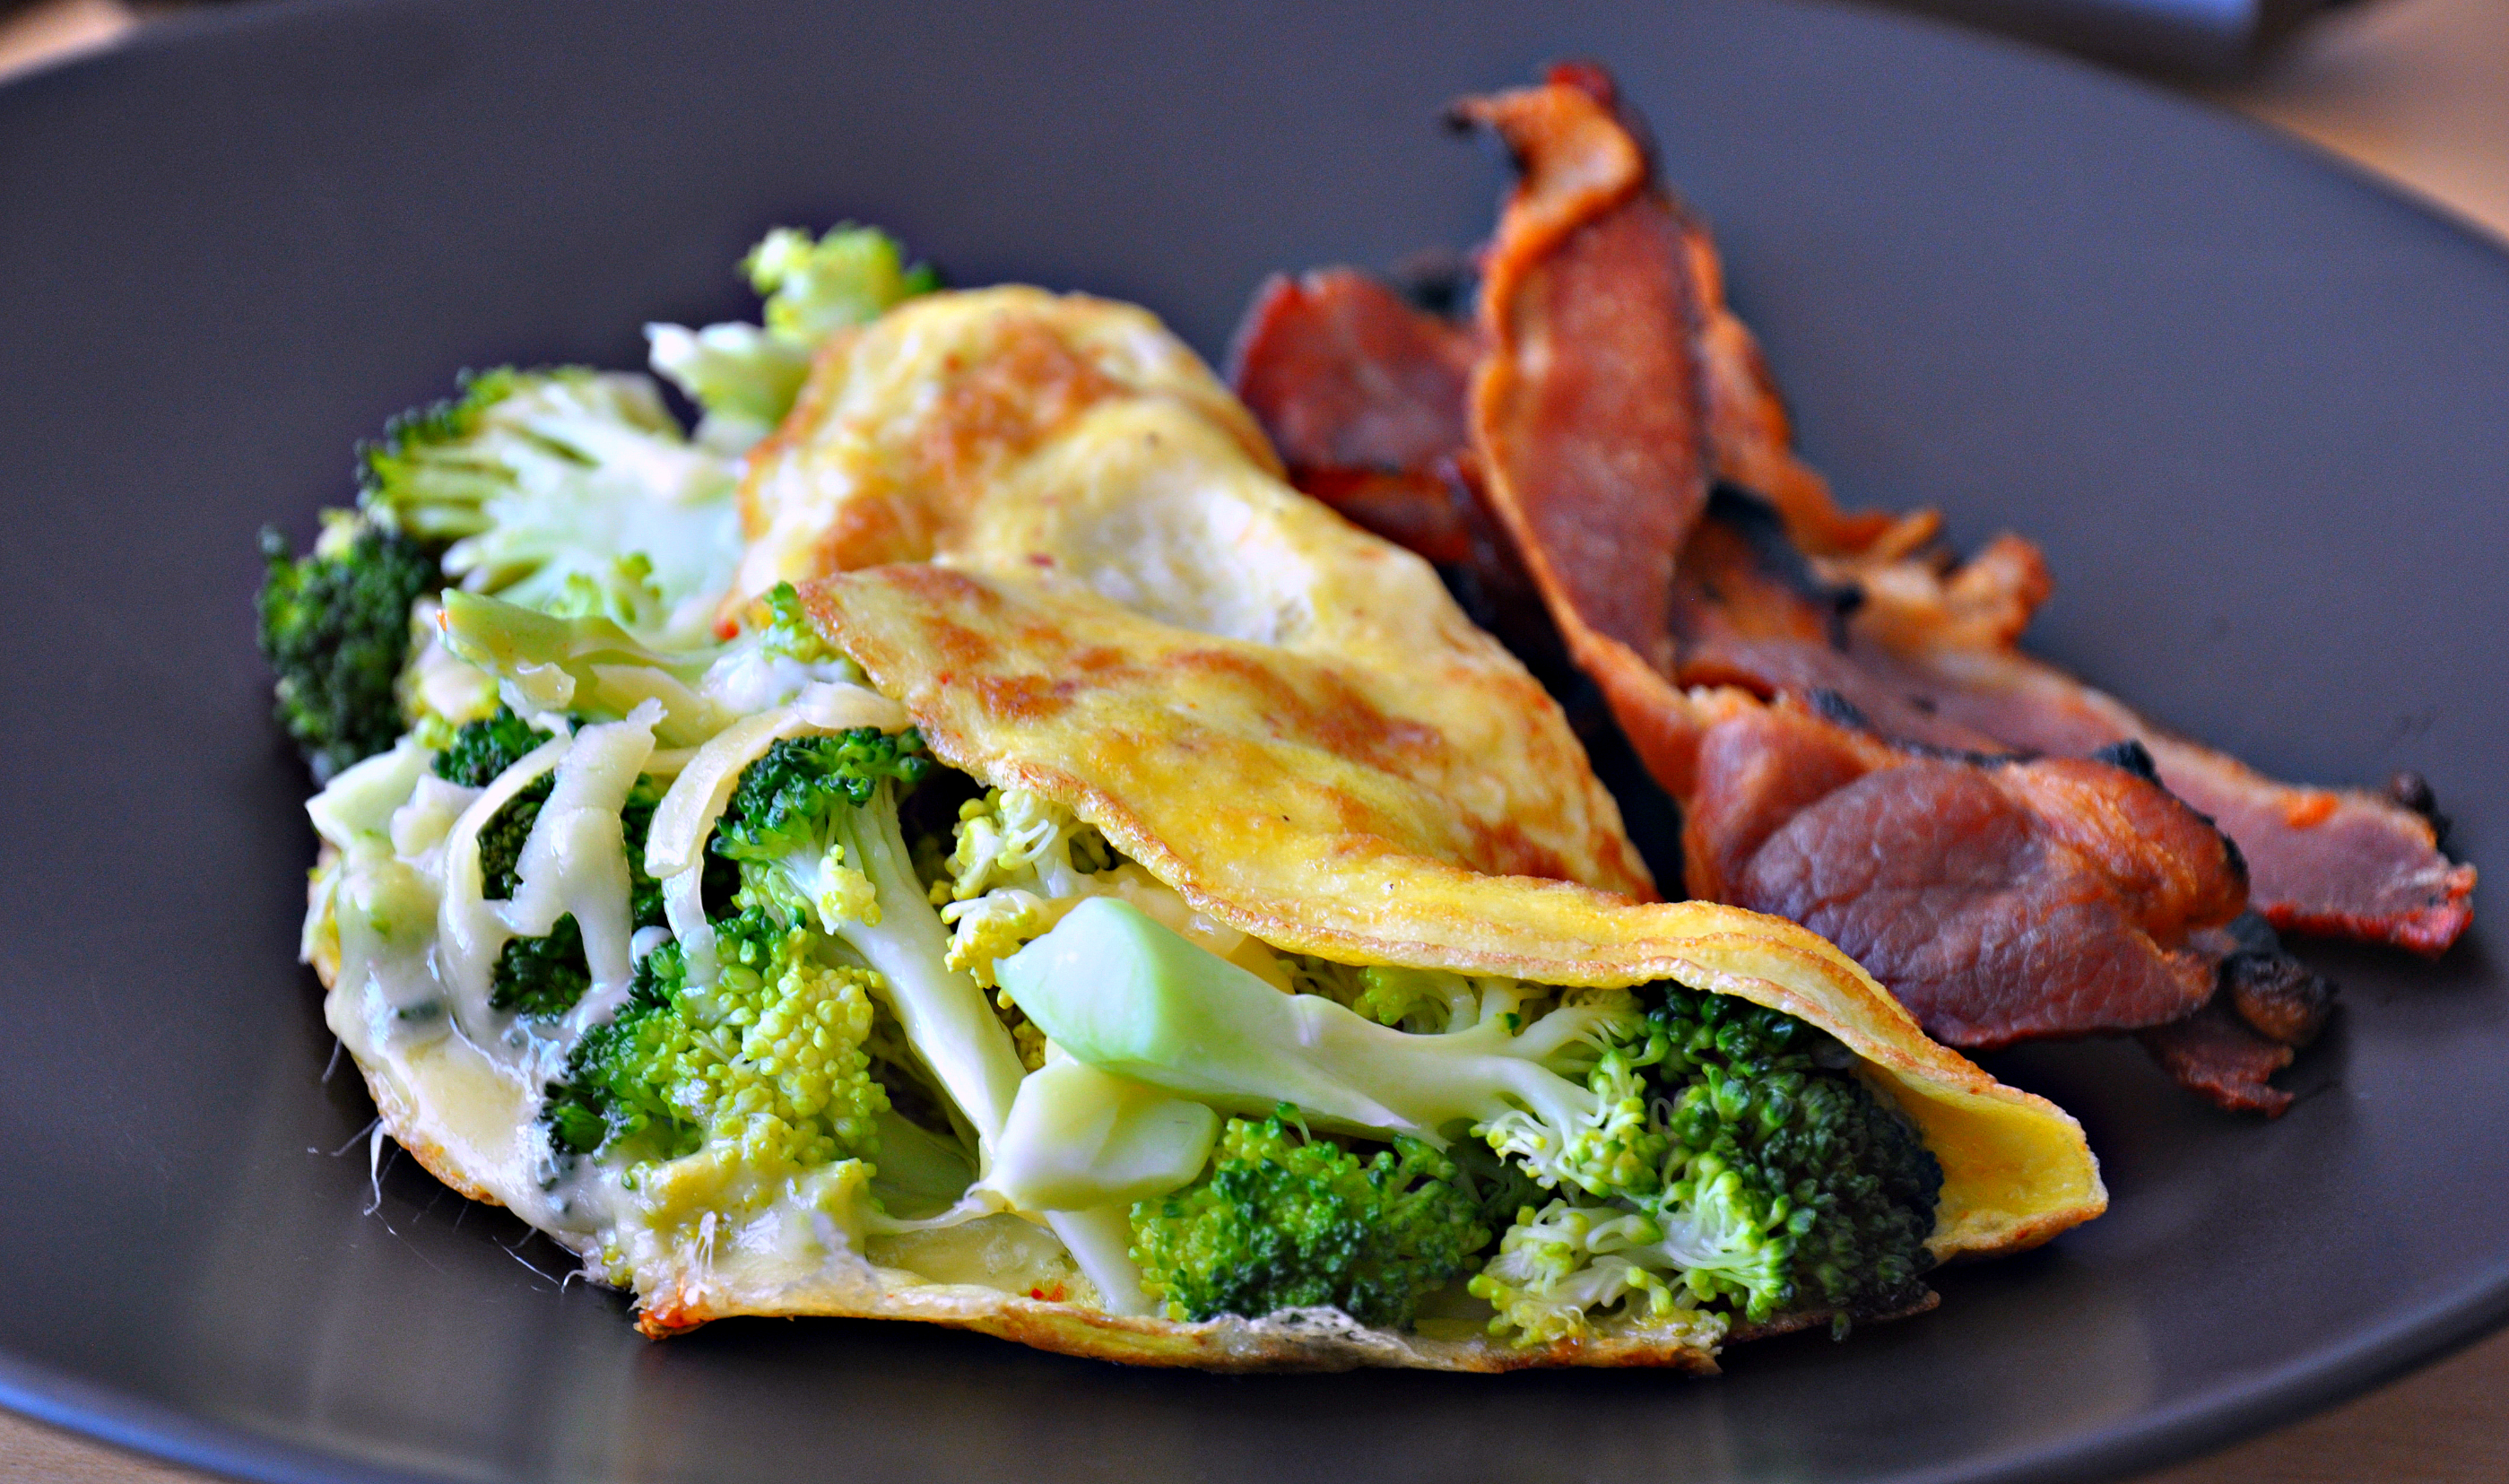 ... broccoli omelette broccoli feta omelet with broccoli and cheddar